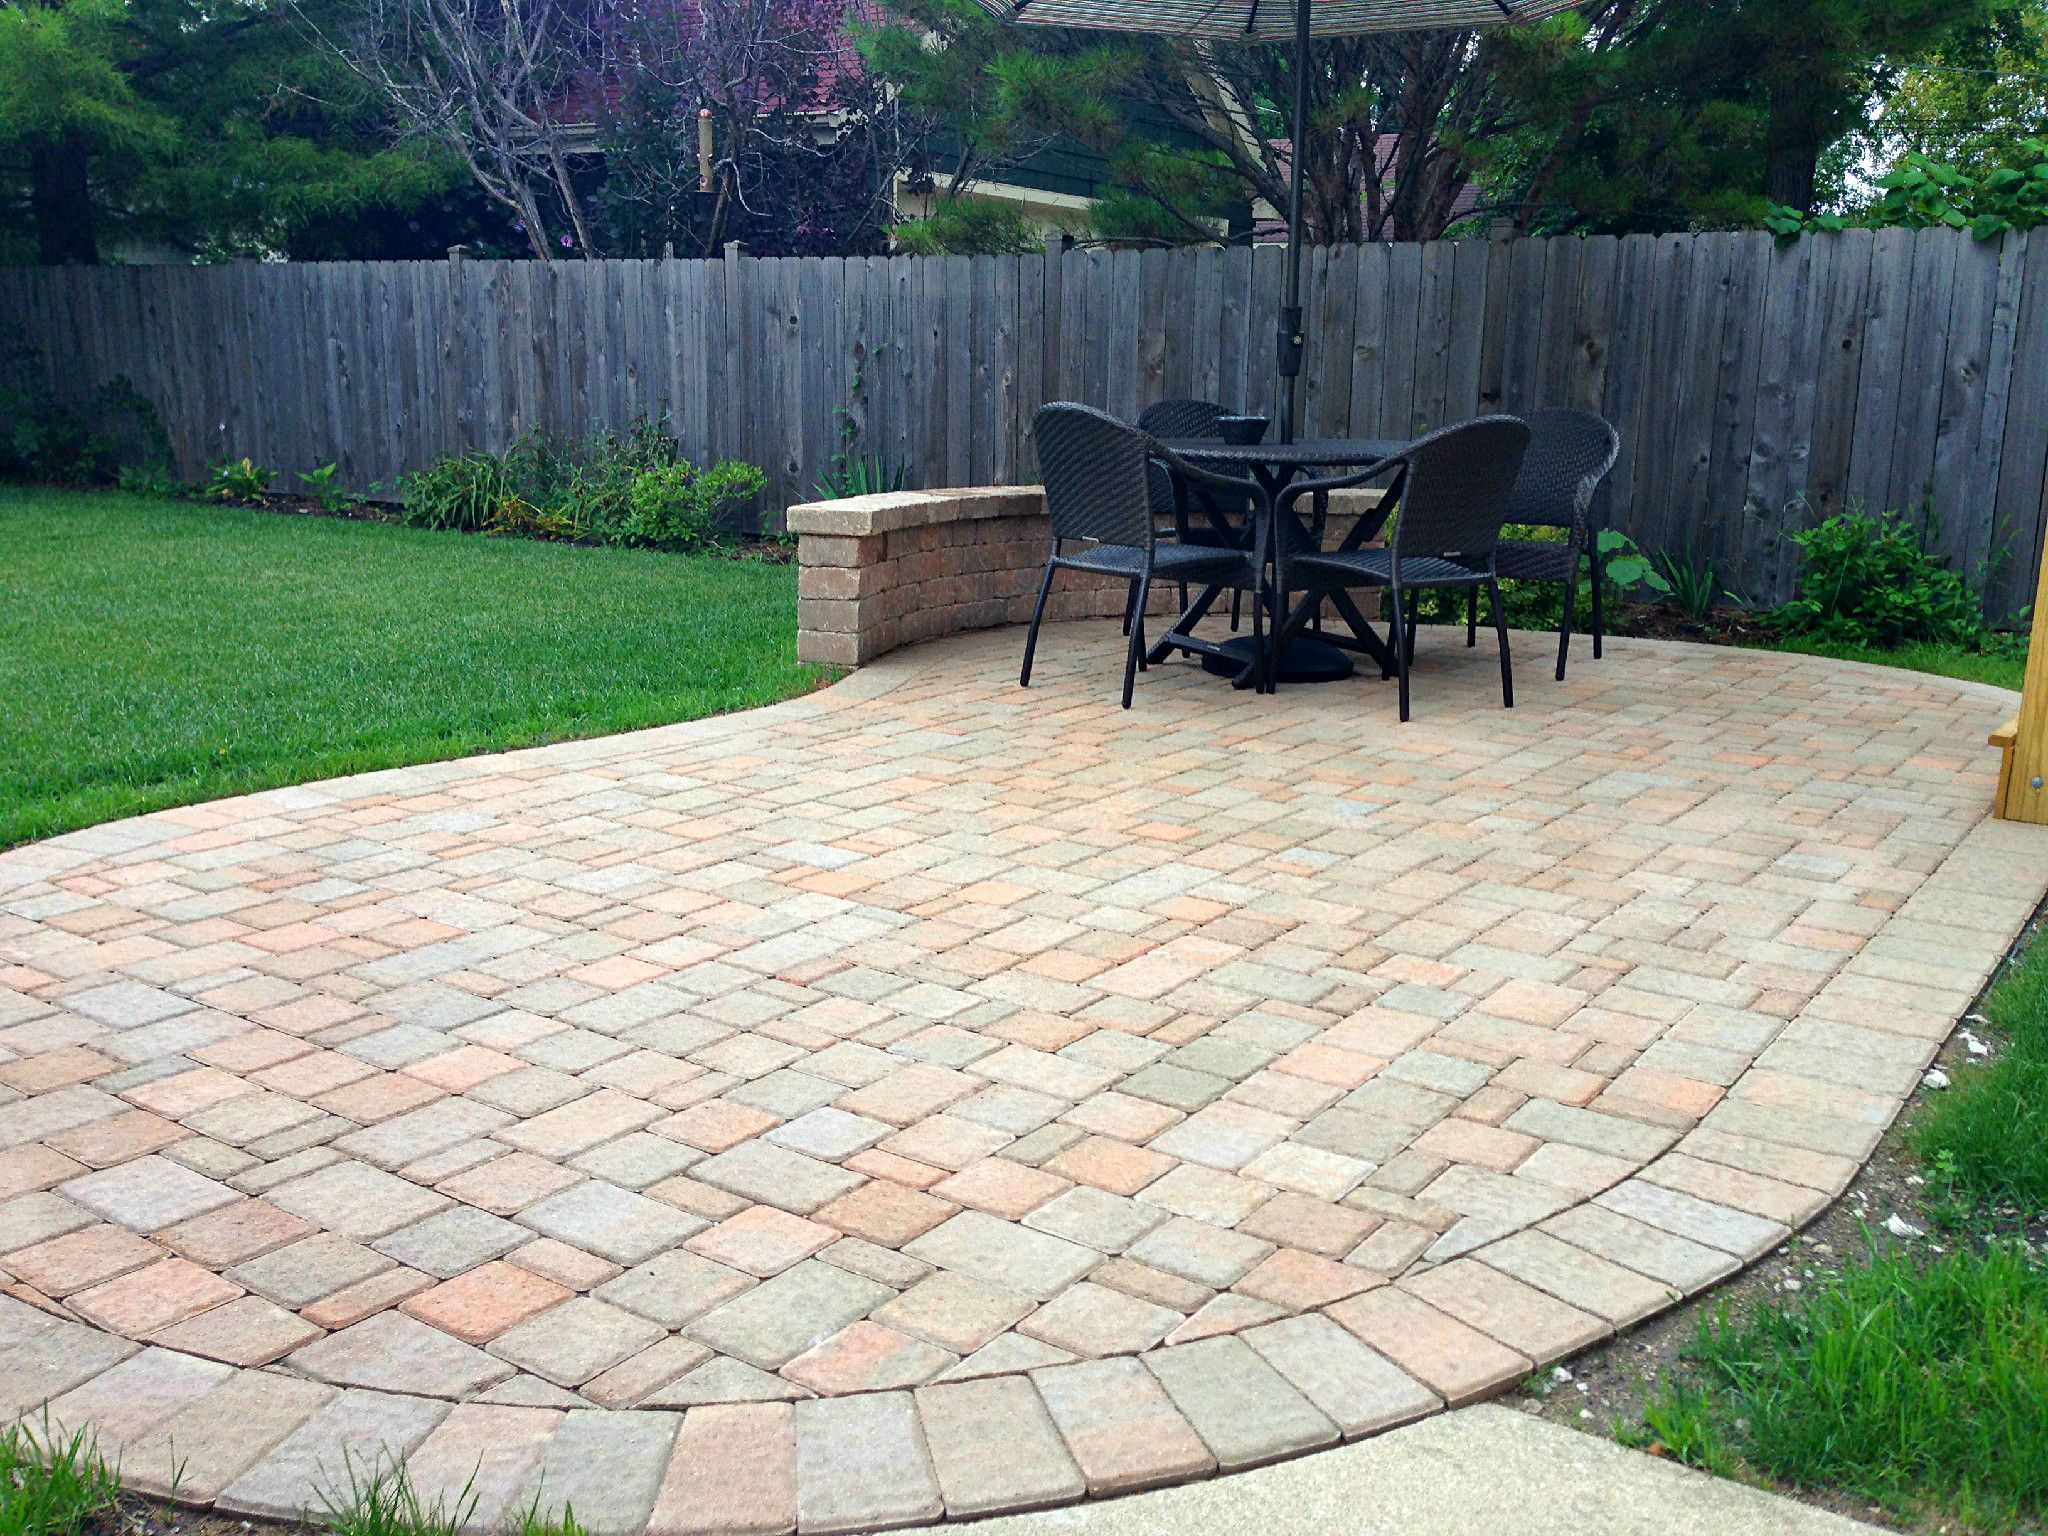 Kidney Bean Shaped Patio Design By Chicagoland Patio Builder